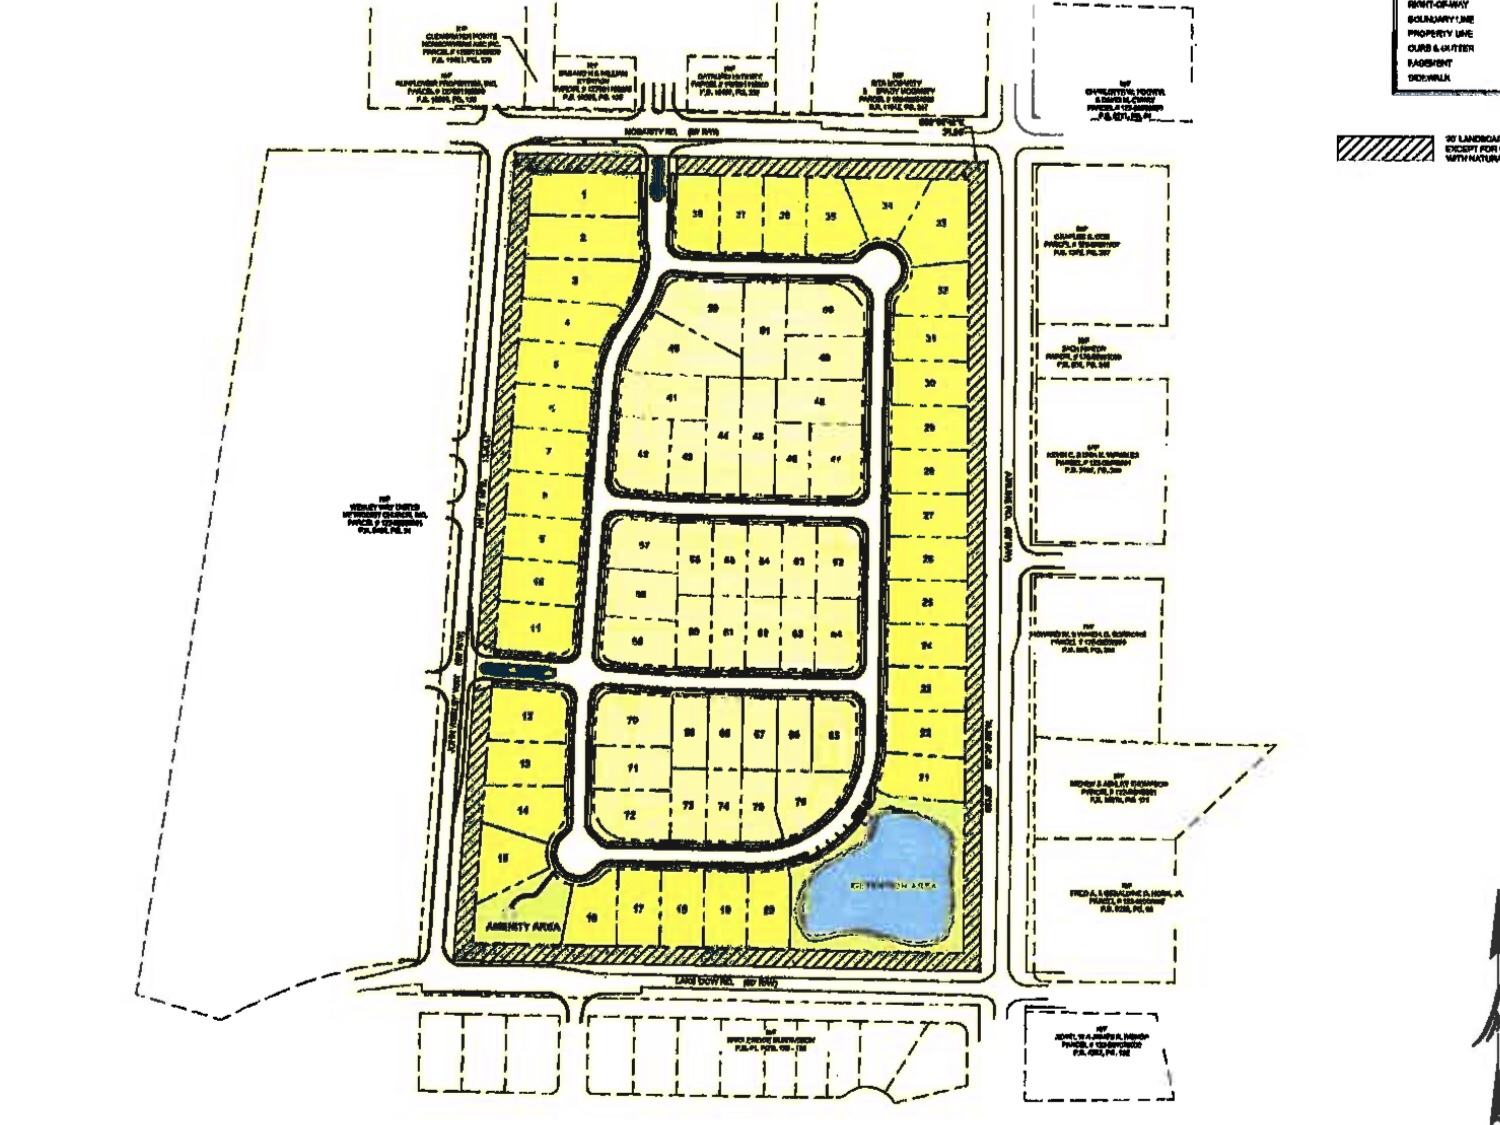 Concept site plan for Stapleton Park subdivision